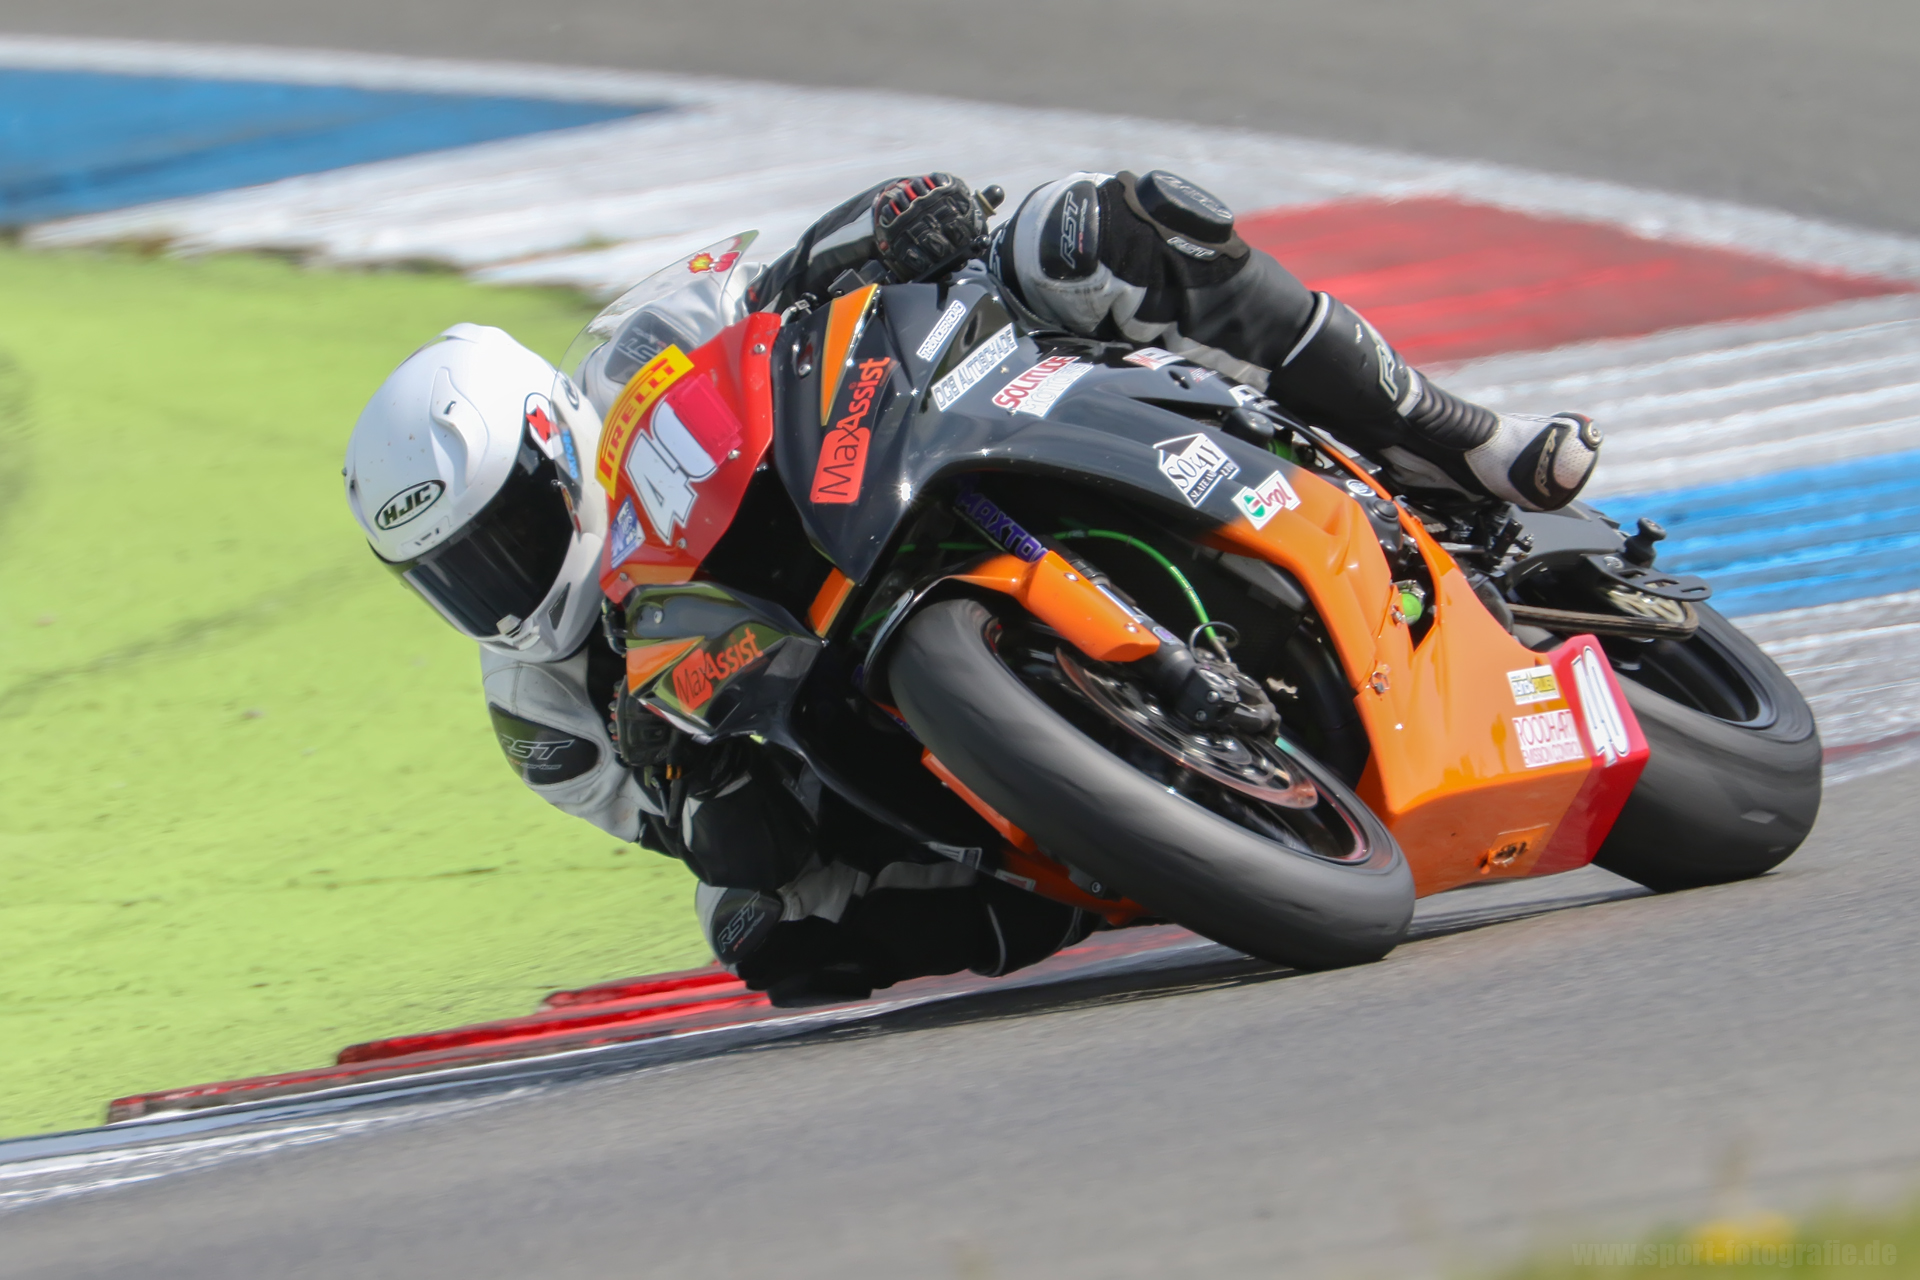 A superb shot from Stekkenwal at Assen, showing my new found comfort on the ZX10.